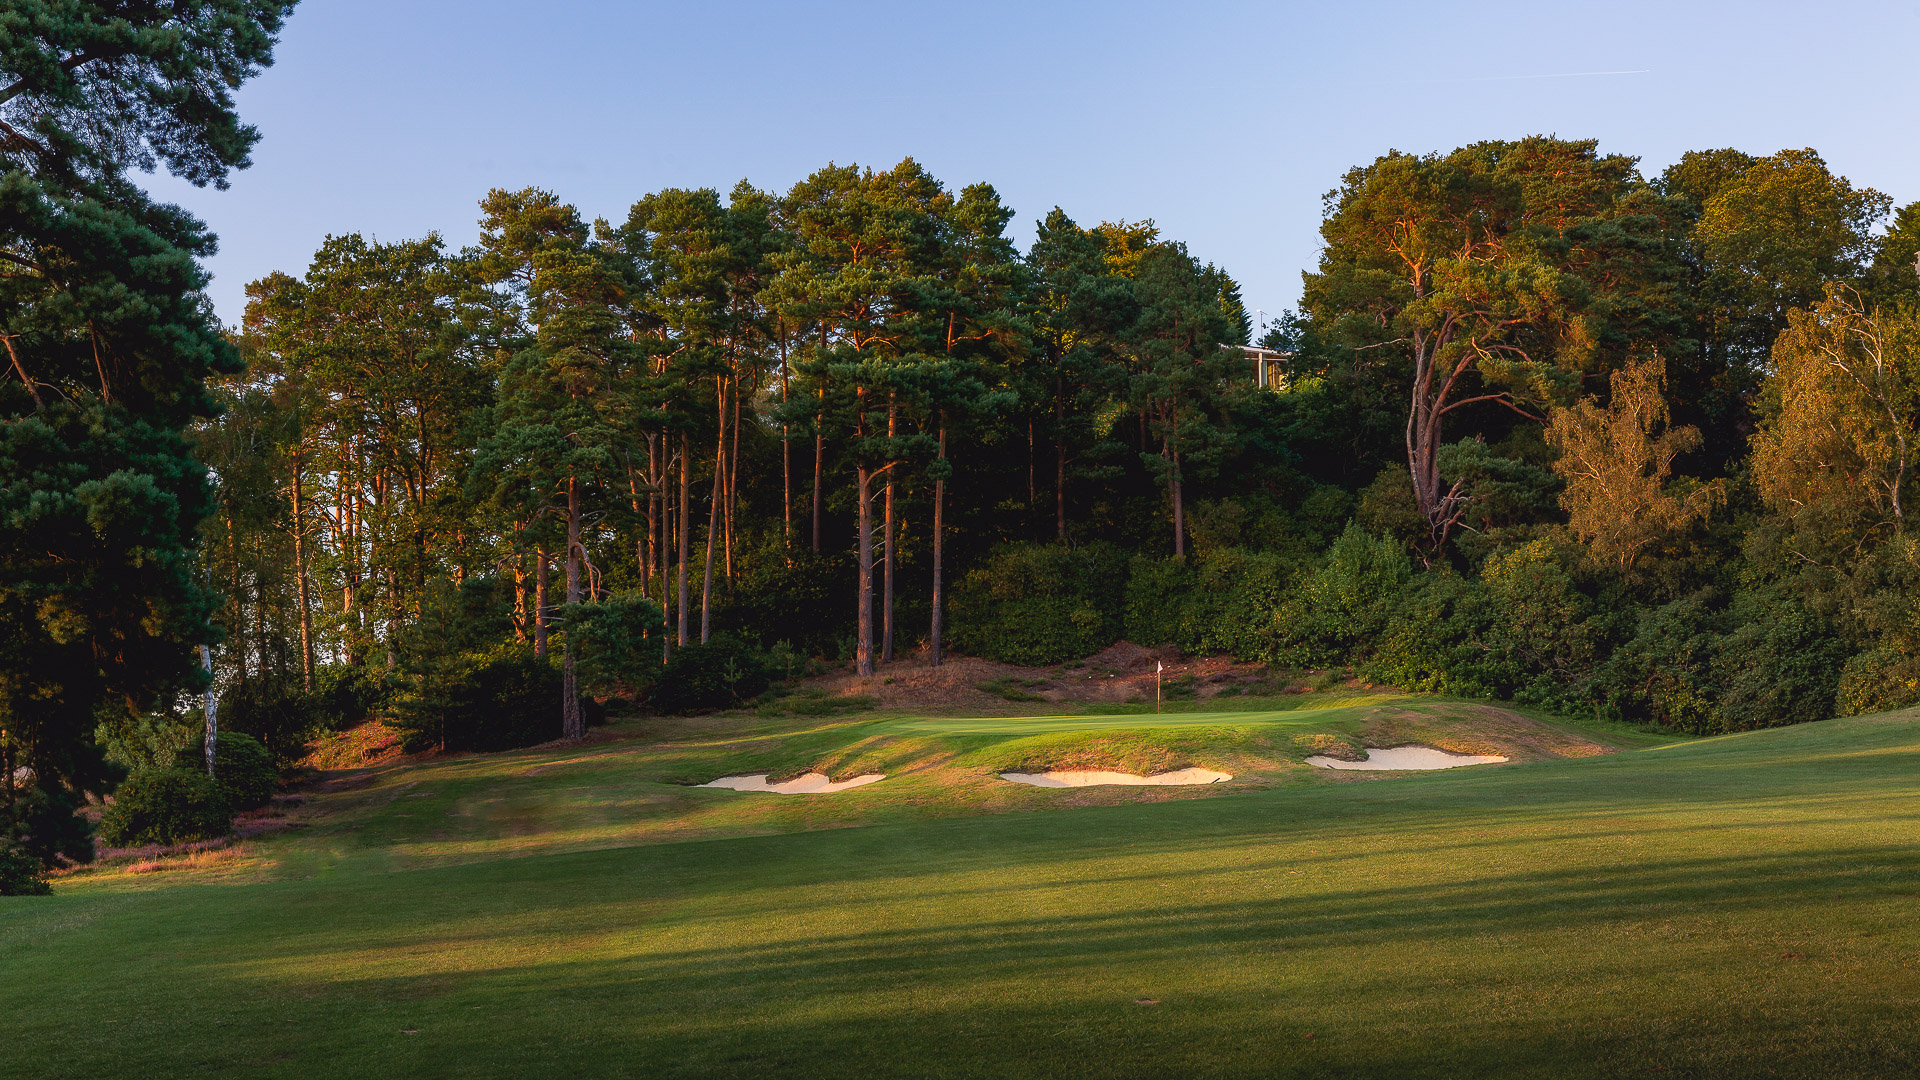 27th-Hole-St-Georges-Hill-Golf-Club-2152-Edit